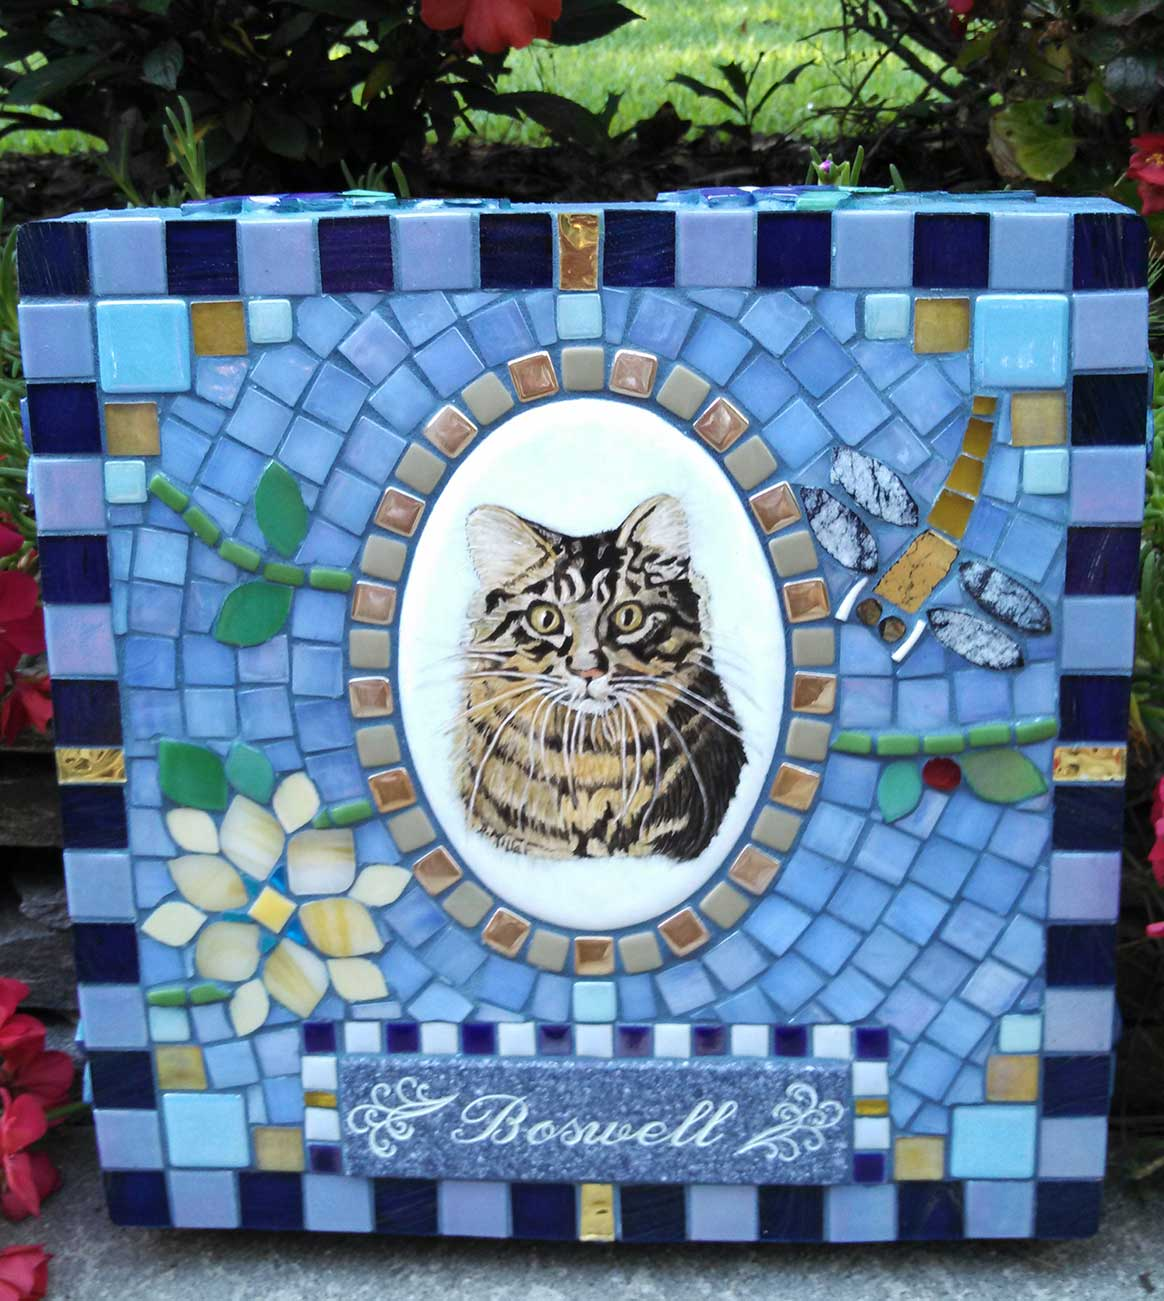 Mosaic Pet Portrait Memorial Stone by Water's End Studio Artist Linda Solby